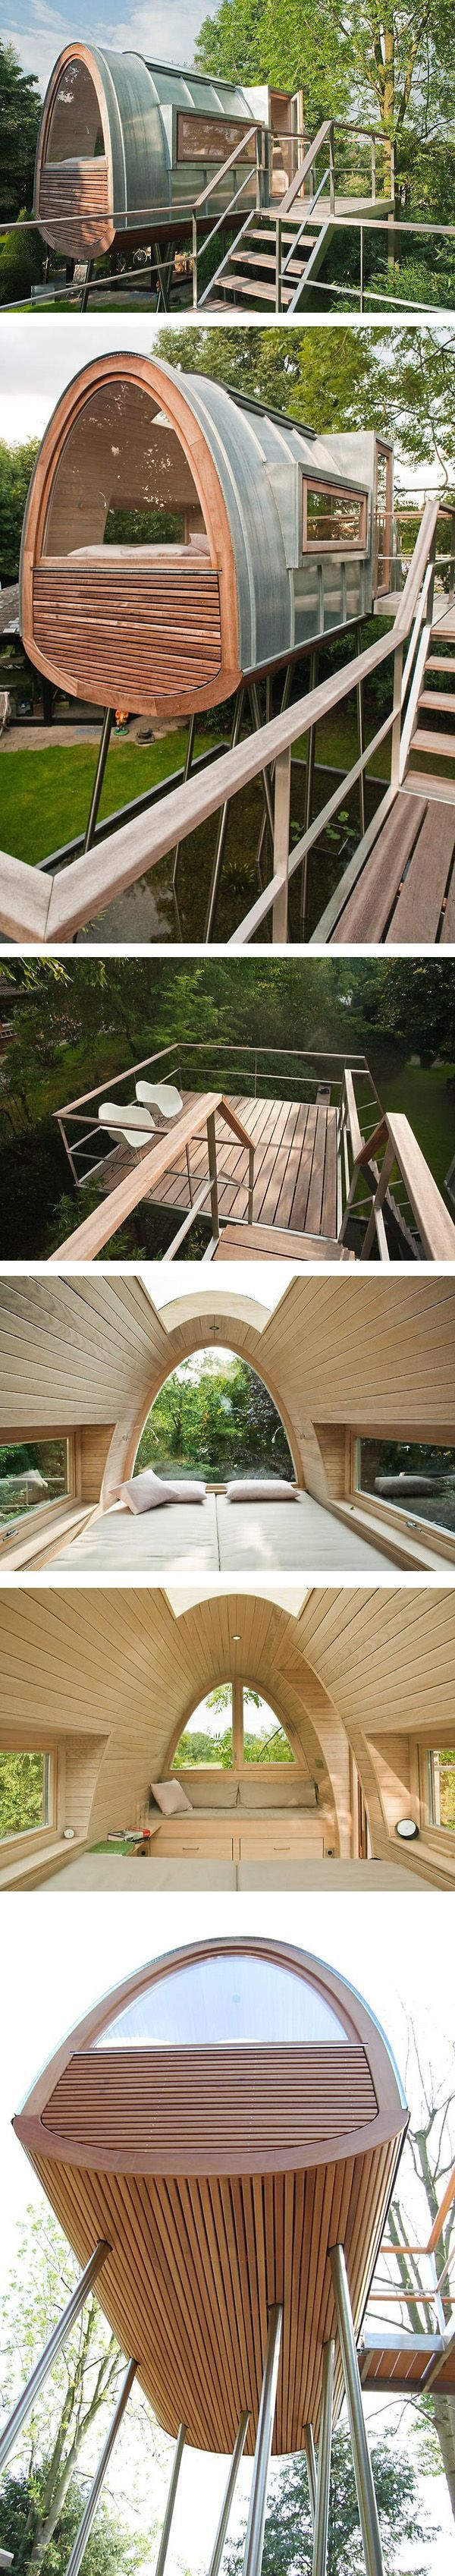 96 best images about tree houses on pinterest house for Cool small tree houses